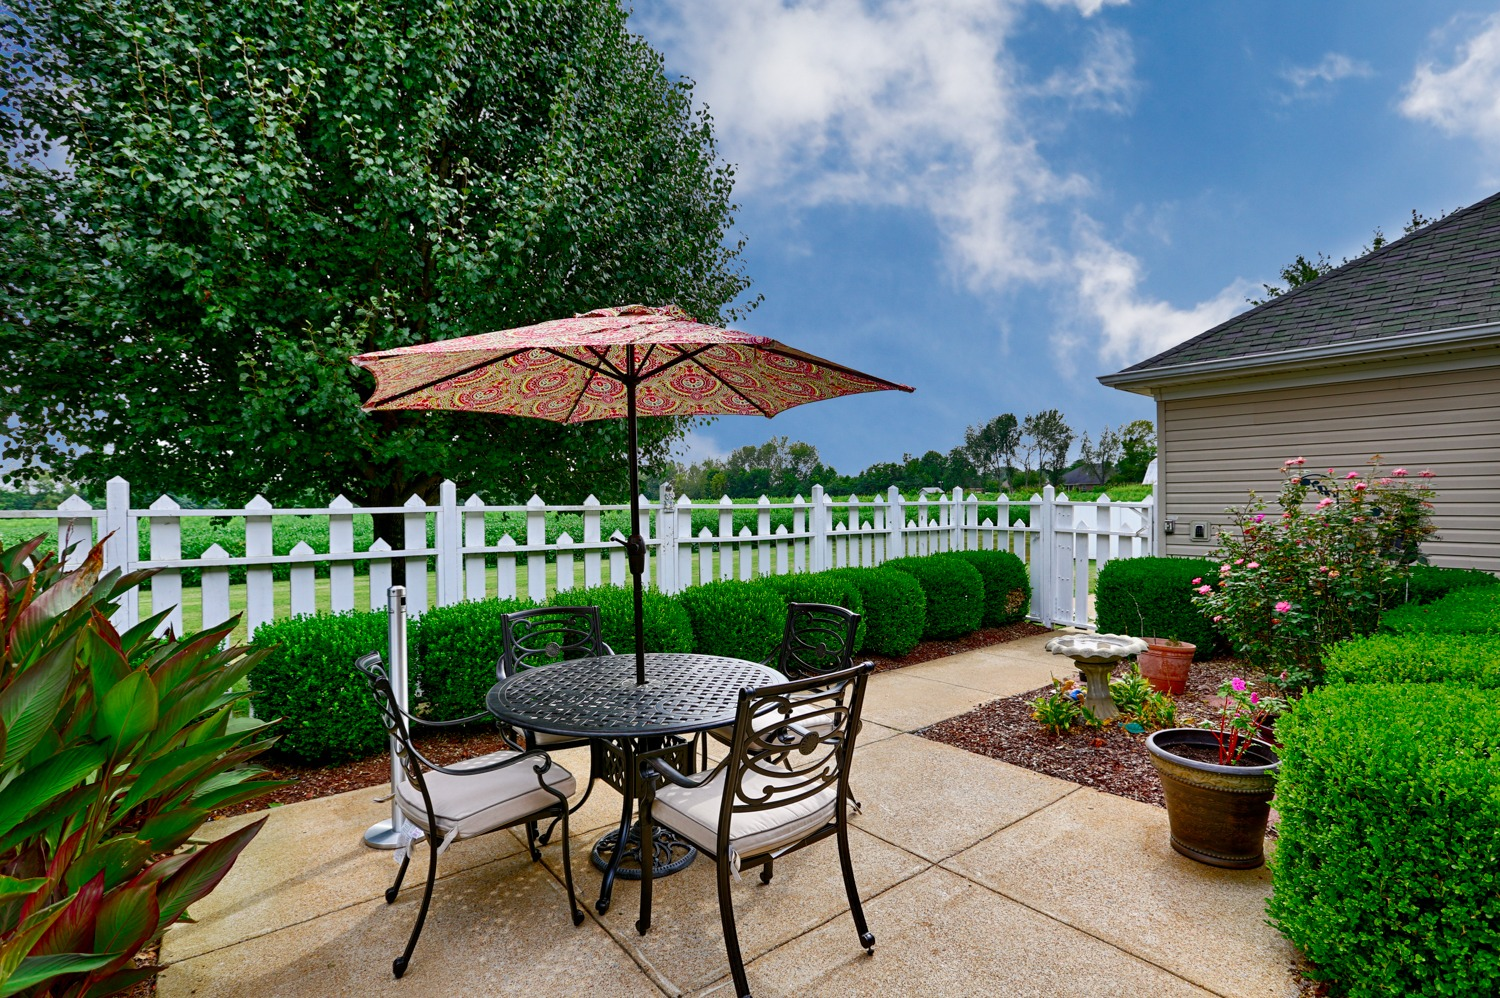 Country Cottage Lawrenceburg - Outdoor area with garden and seating